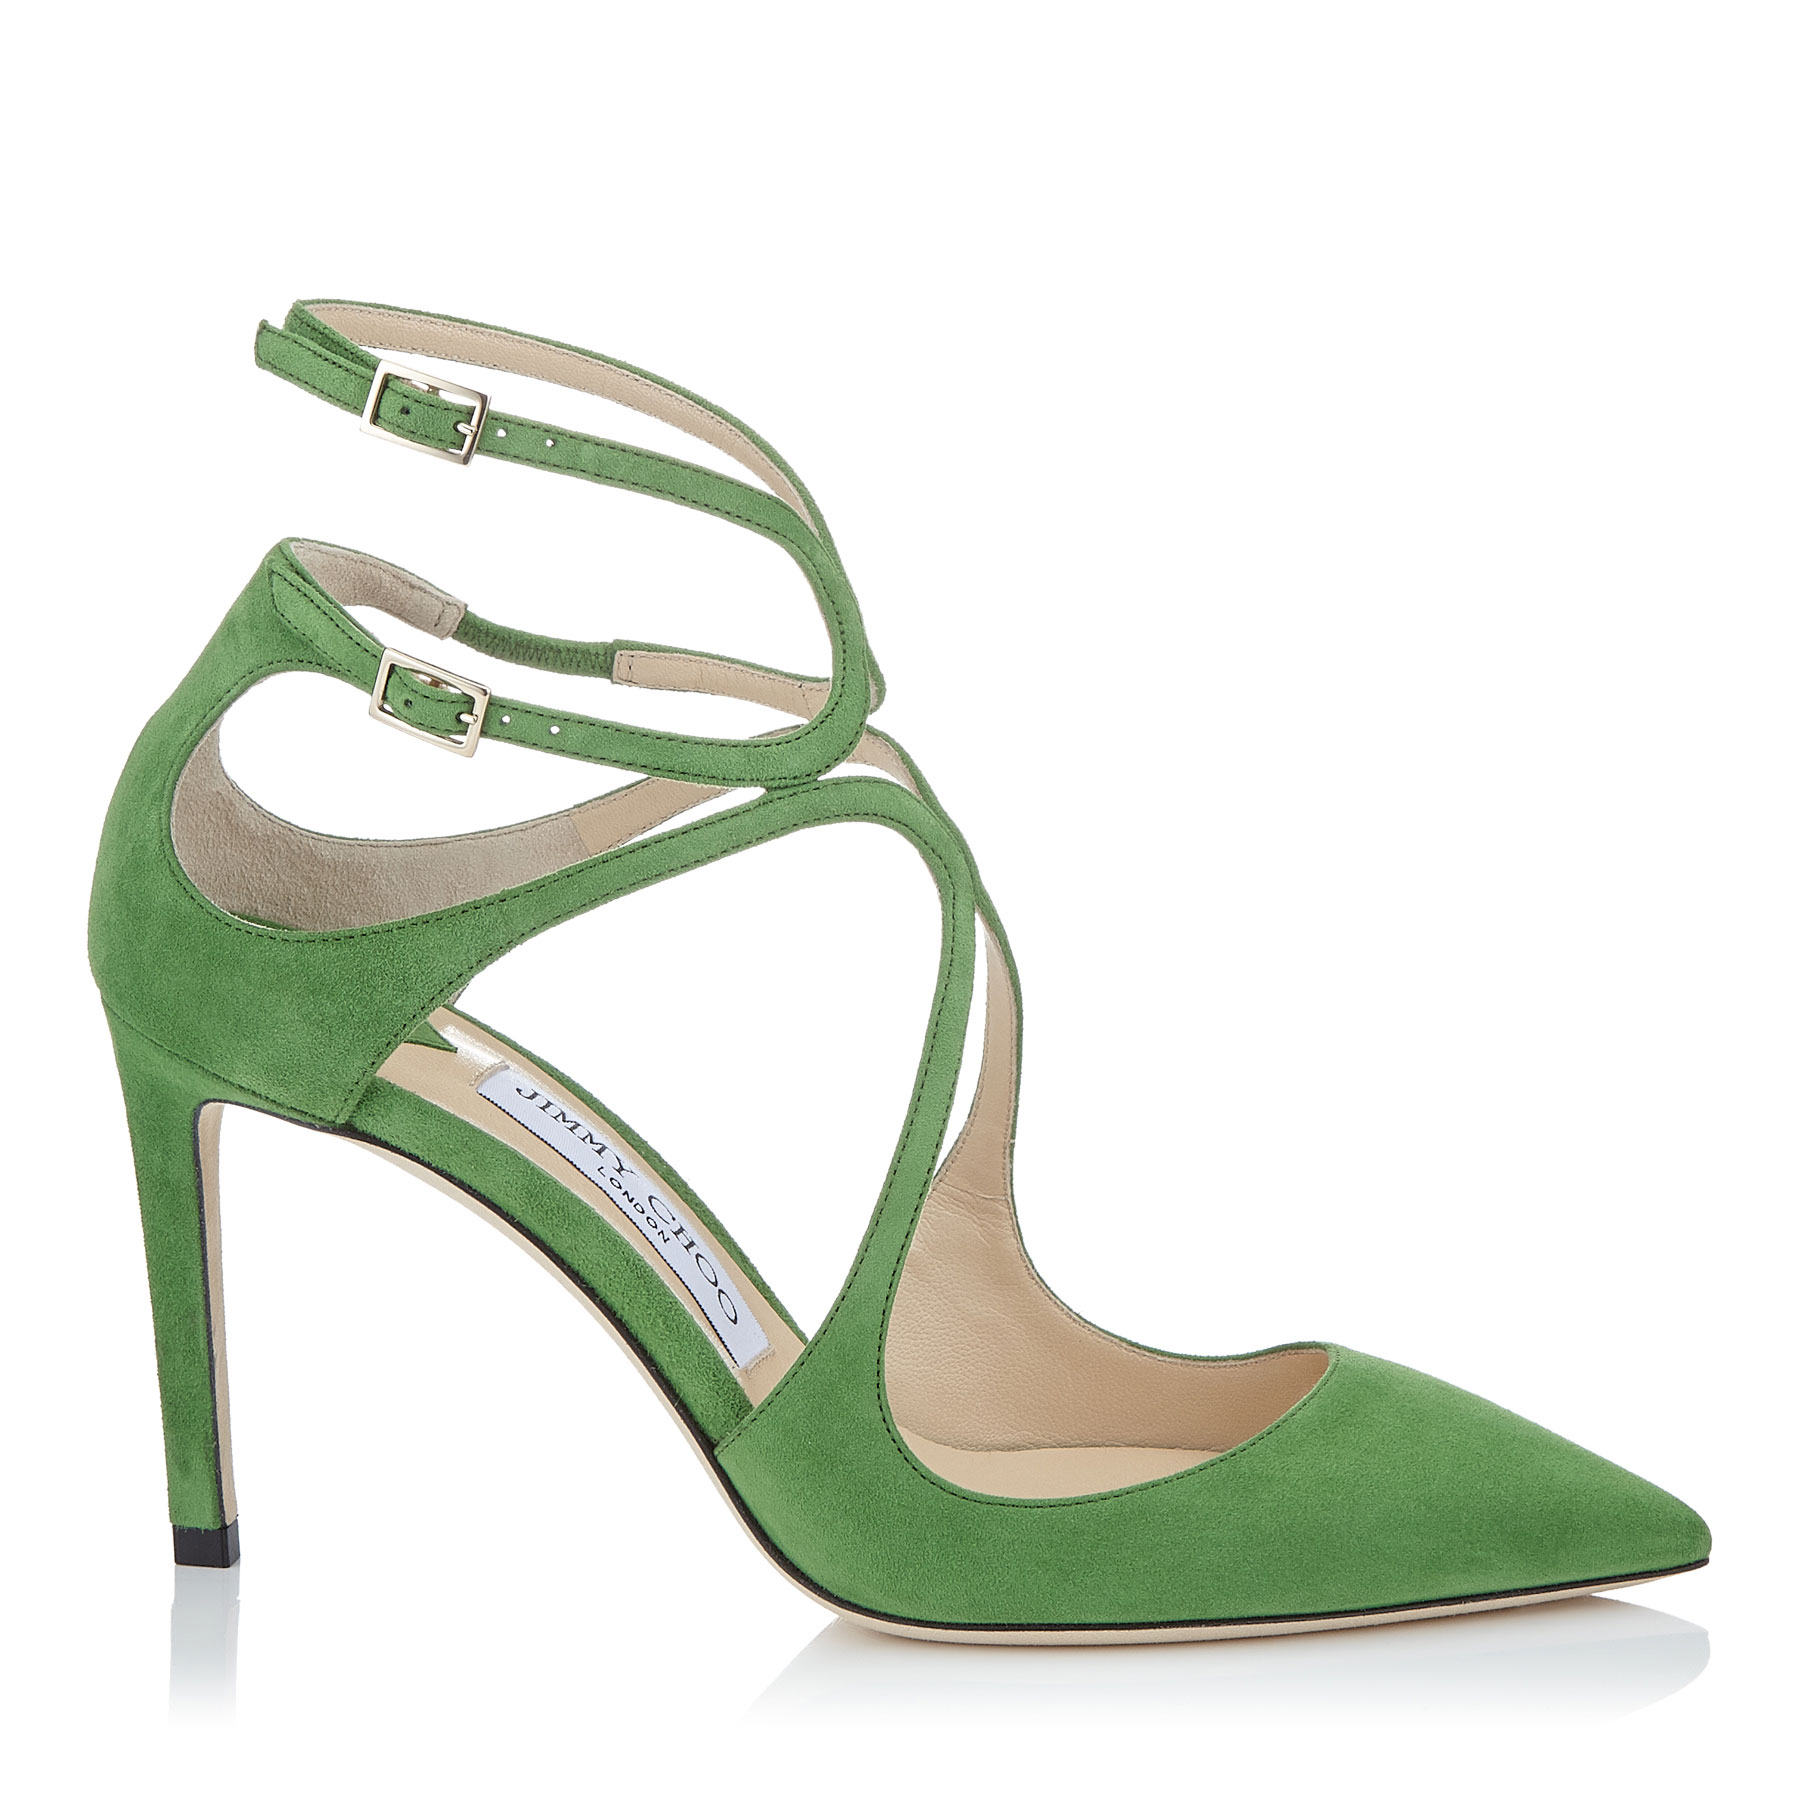 LANCER 100 Lime Suede Pointy Toe Pumps